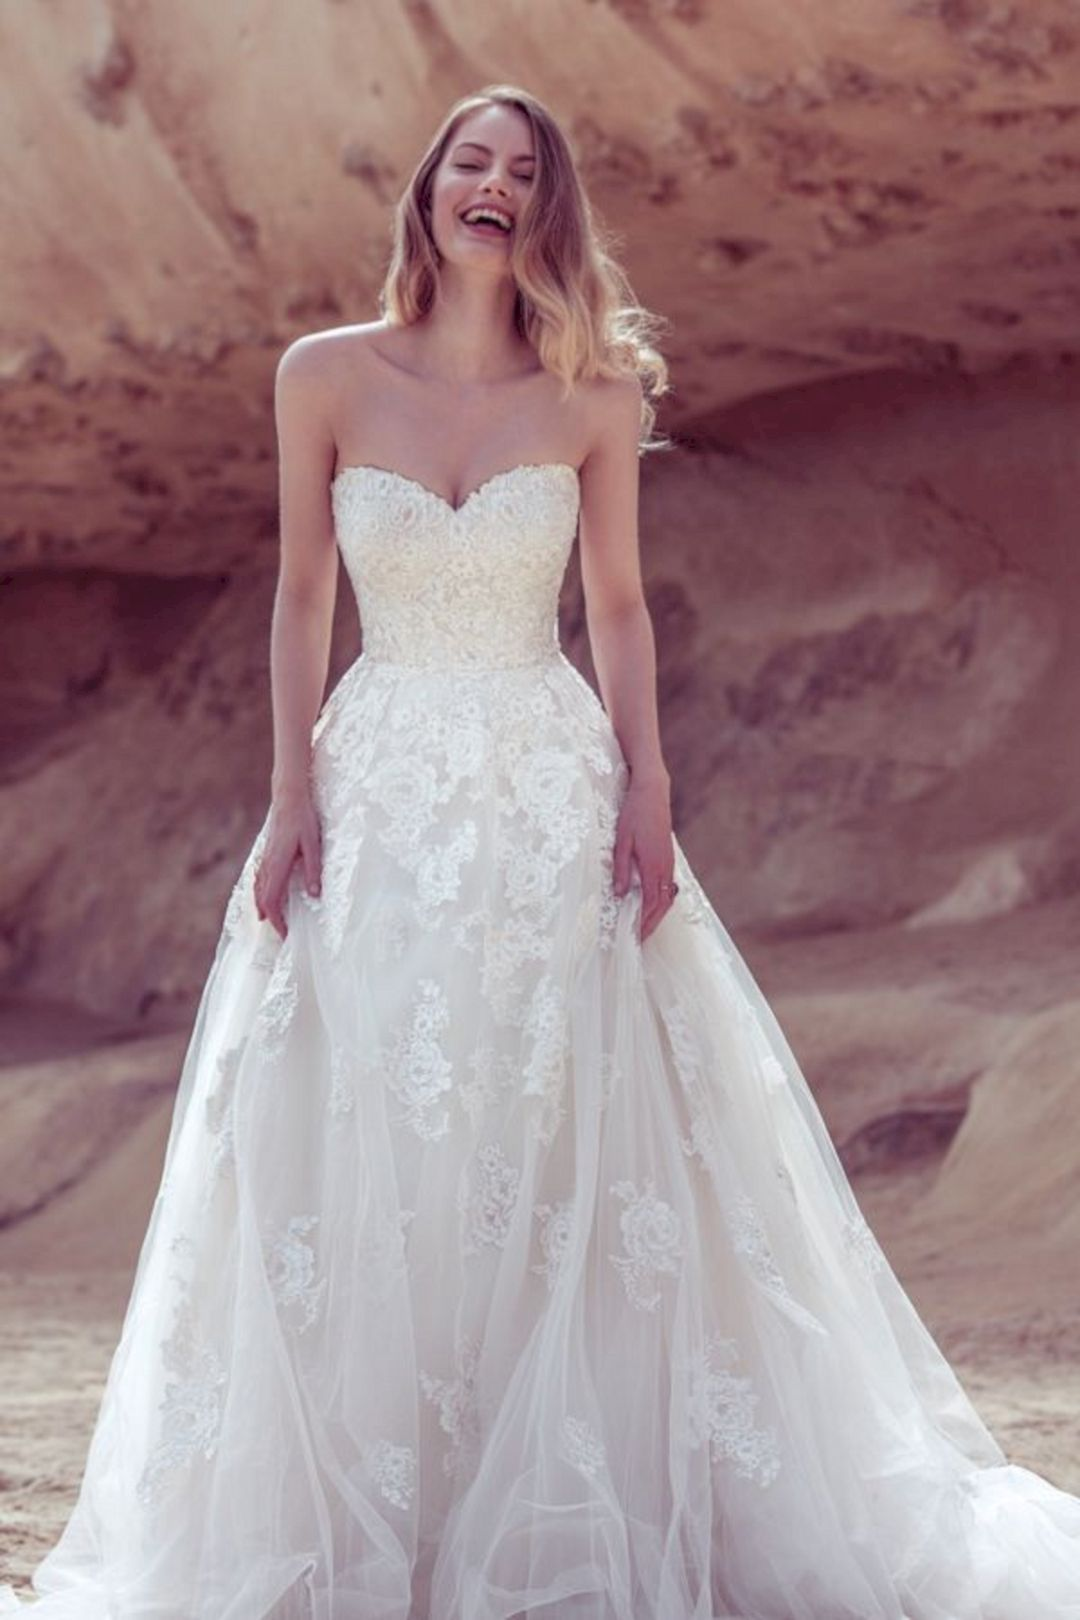 30 Sweetheart Neckline Wedding Gown For Bride Looks More Pretty